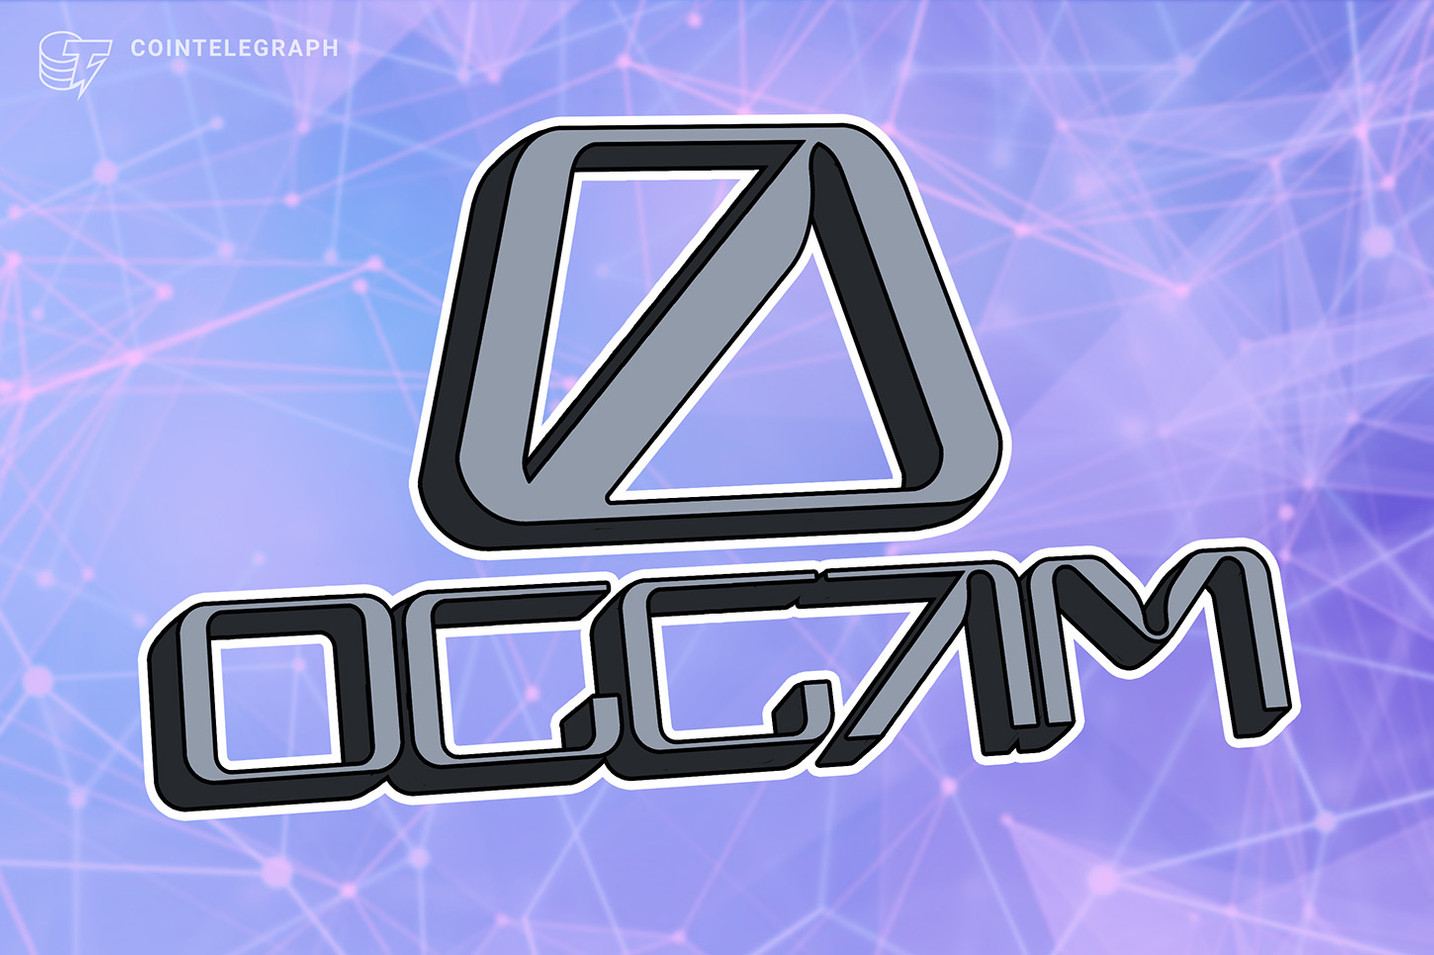 Open Rights Exchange (ORE) complete successful IDO on OccamRazer